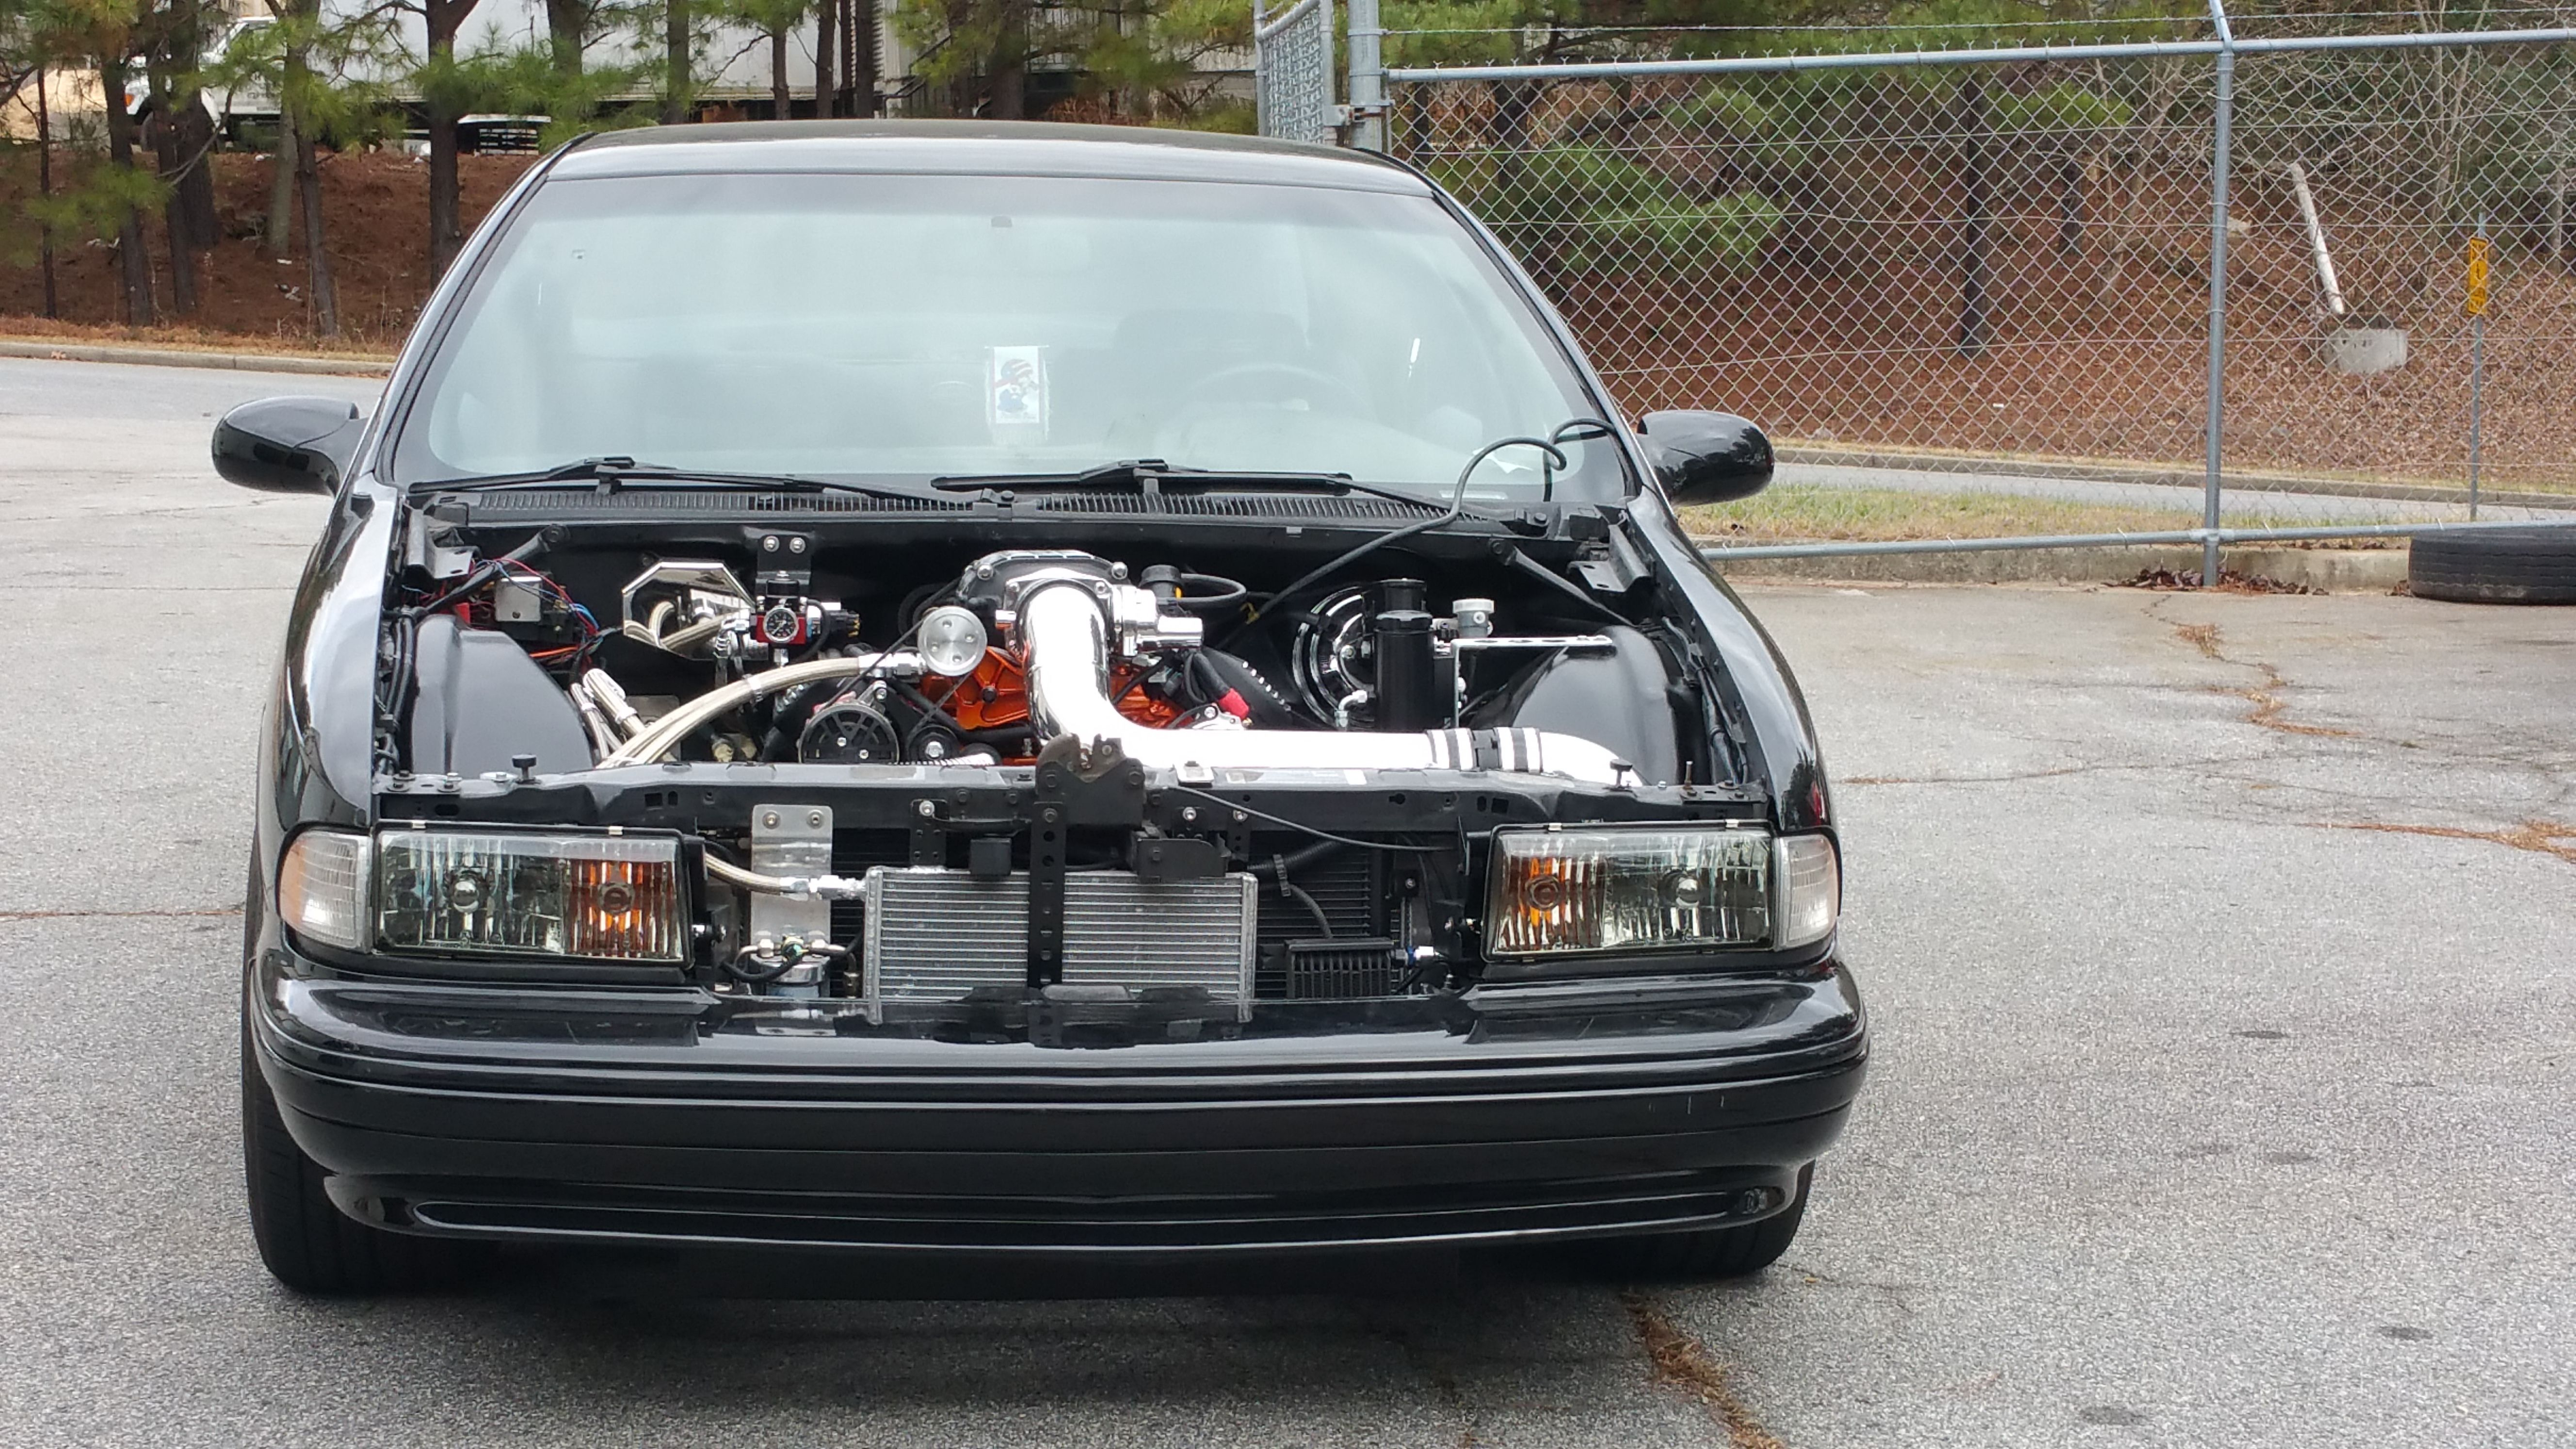 1996 impala ss with a 540ci big block chevy paired with a set of 91mm turbos ch